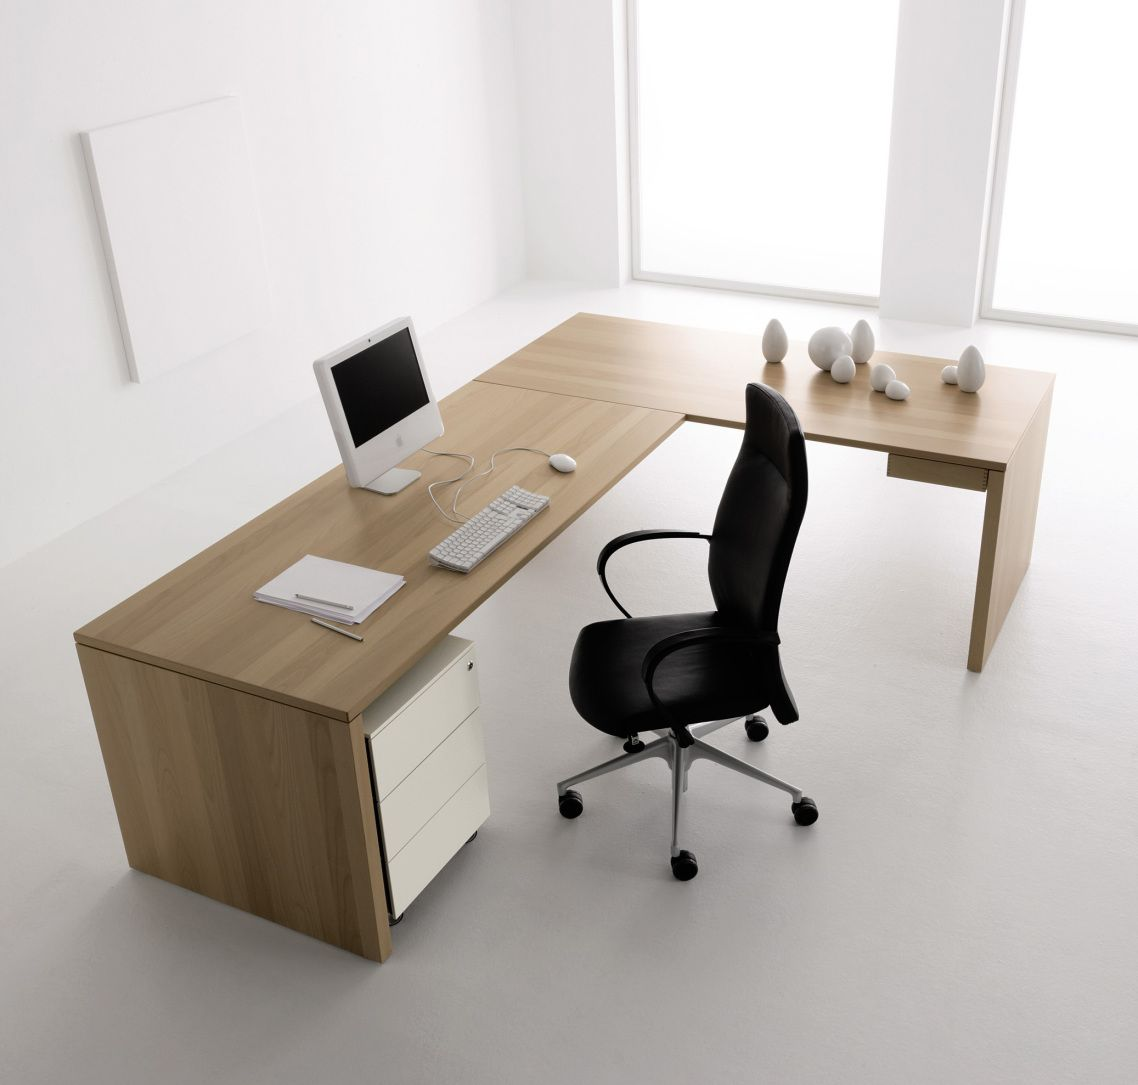 Office Tables Best Modern Simple Office White Office Desk Designing With L Shaped Lacquer Counter Office Desk Designs Office Table Design Modern L Shaped Desk